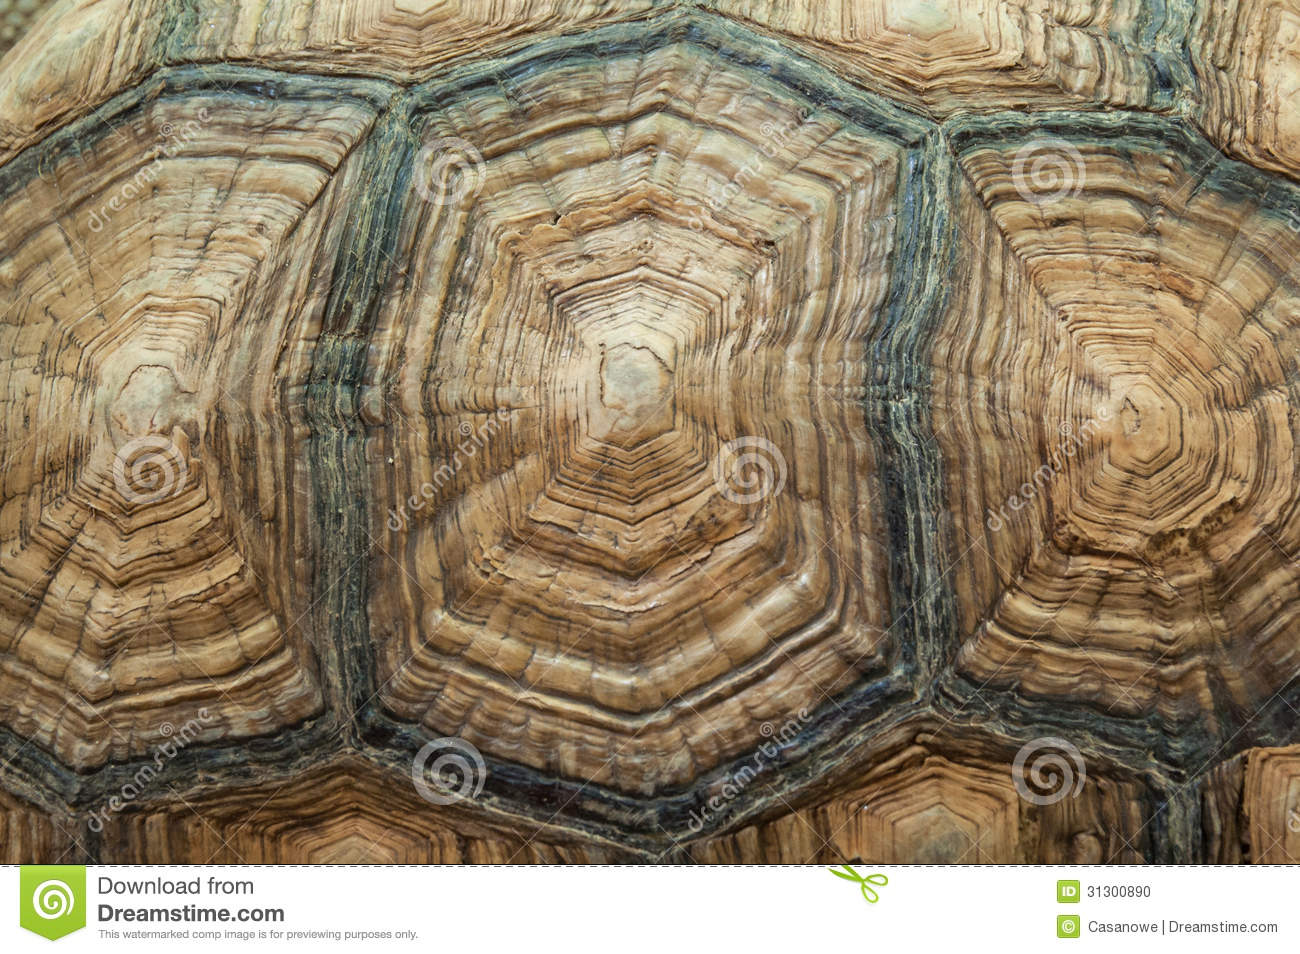 Turtle shell pattern wallpaper